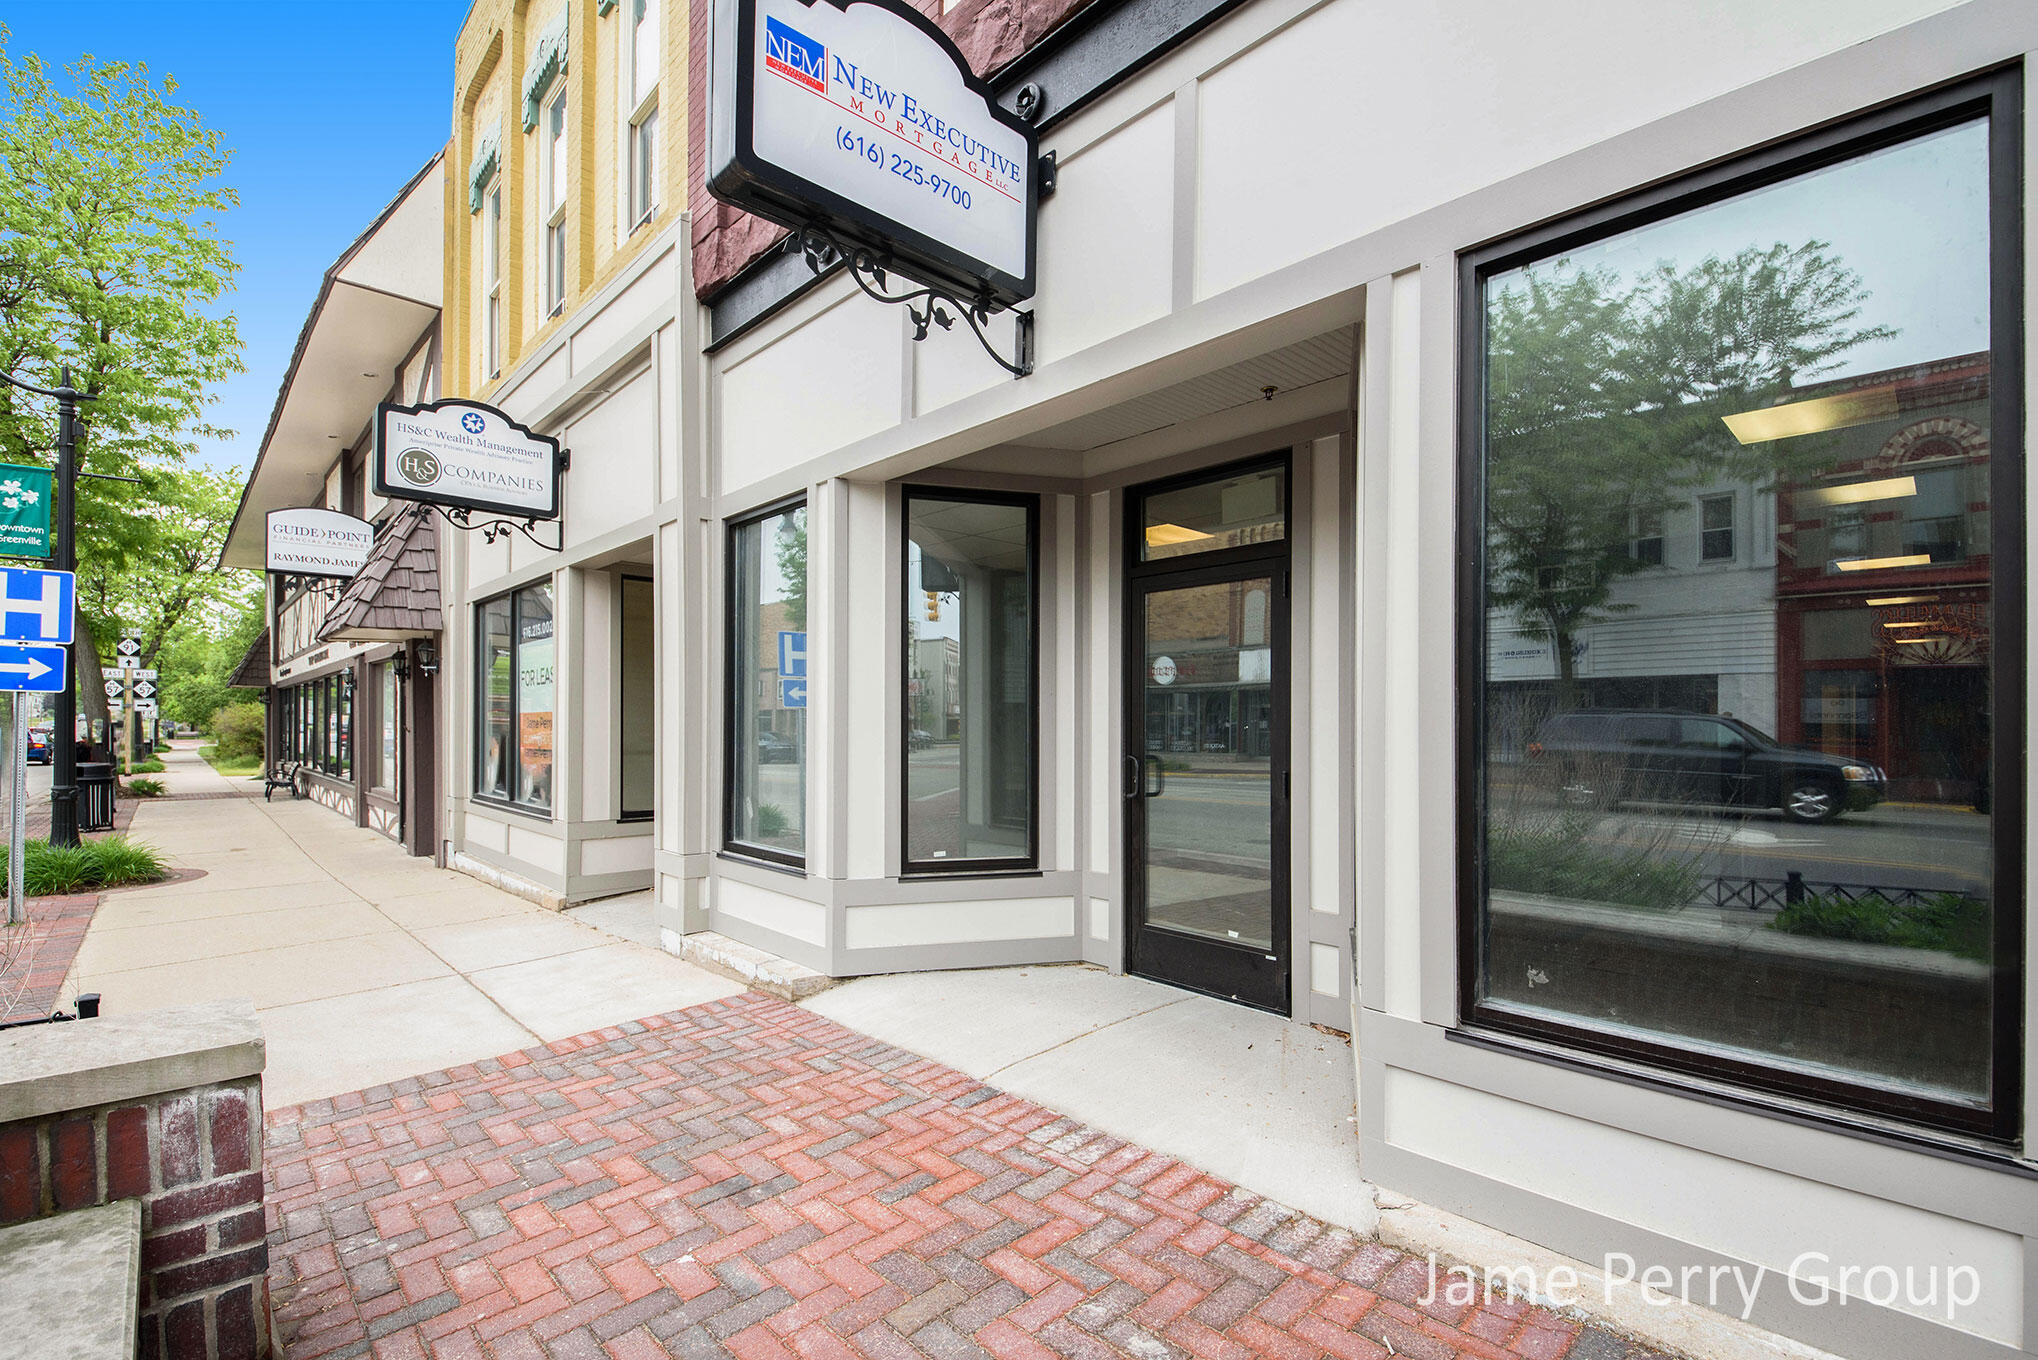 Tremendous professional office, services or retail establishment available for immediate occupancy. Located right in the heart of downtown Greenville near corner of Cass and Lafayette. Features reception are with 3 private offices, kitchen area and lavatory facilities. Great opportunity and commercial space is limited in growing city. Call for more details or showing.